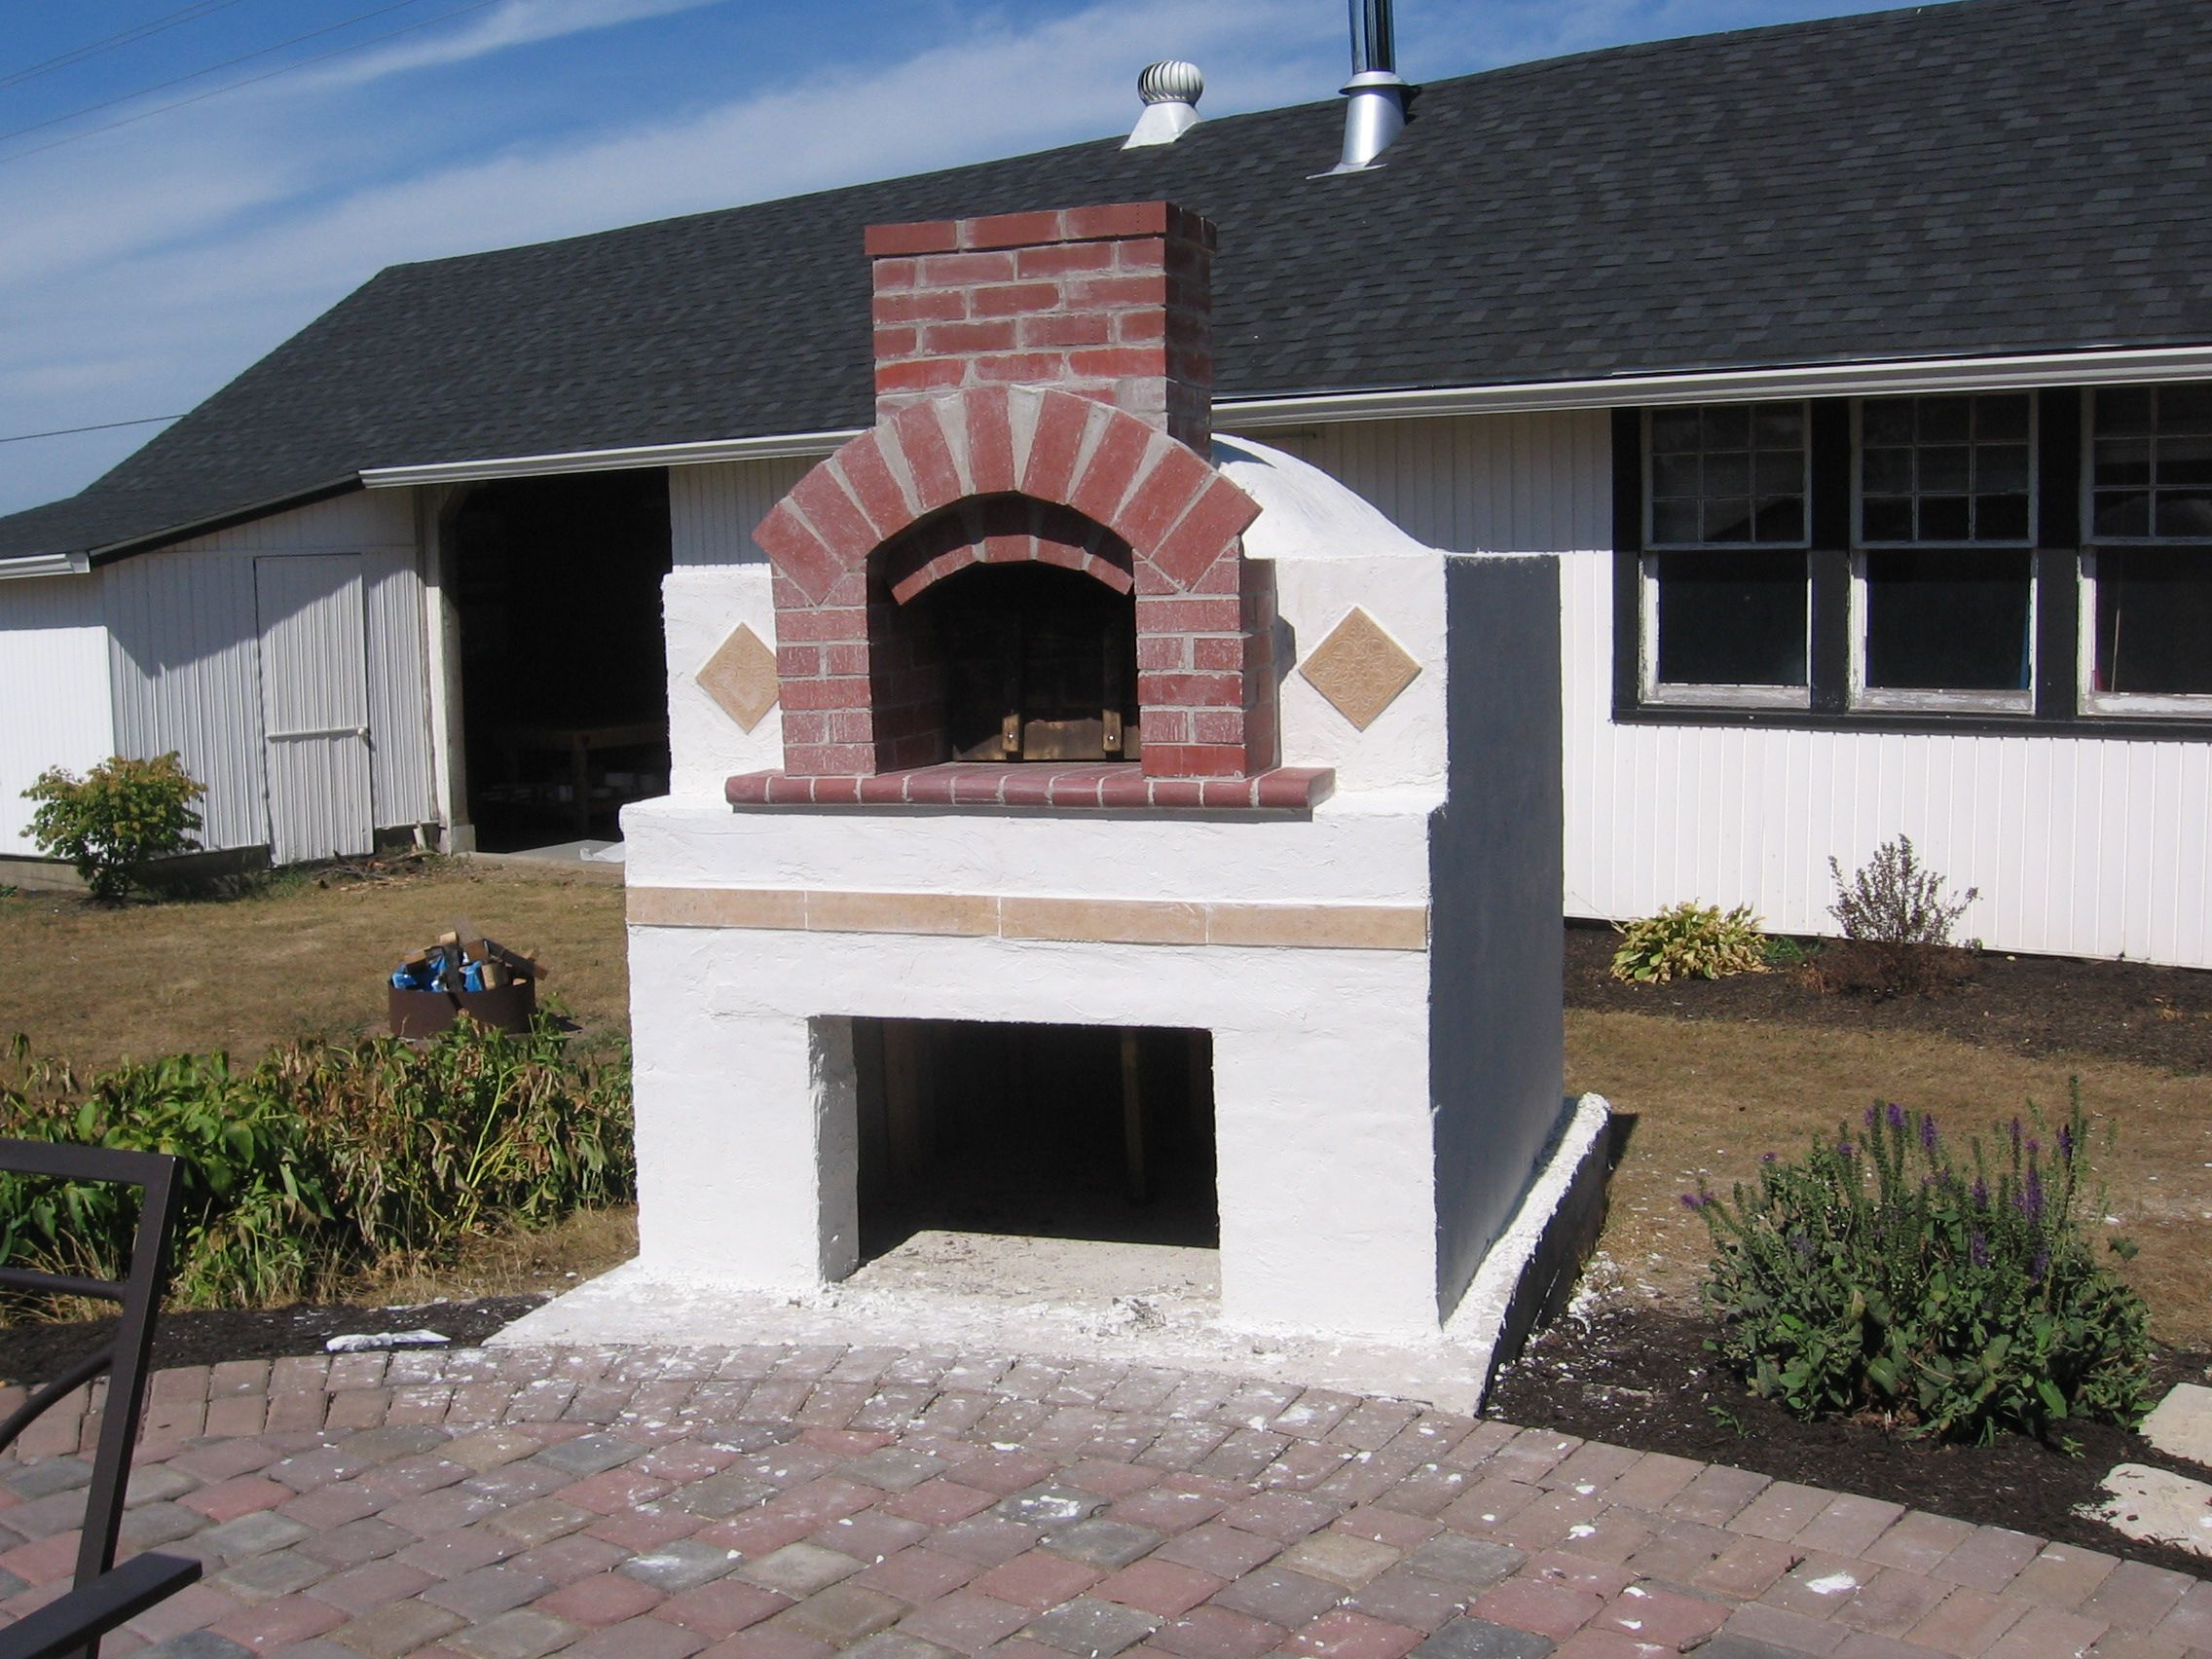 Diy pizza oven finished fire it up diy pizza oven